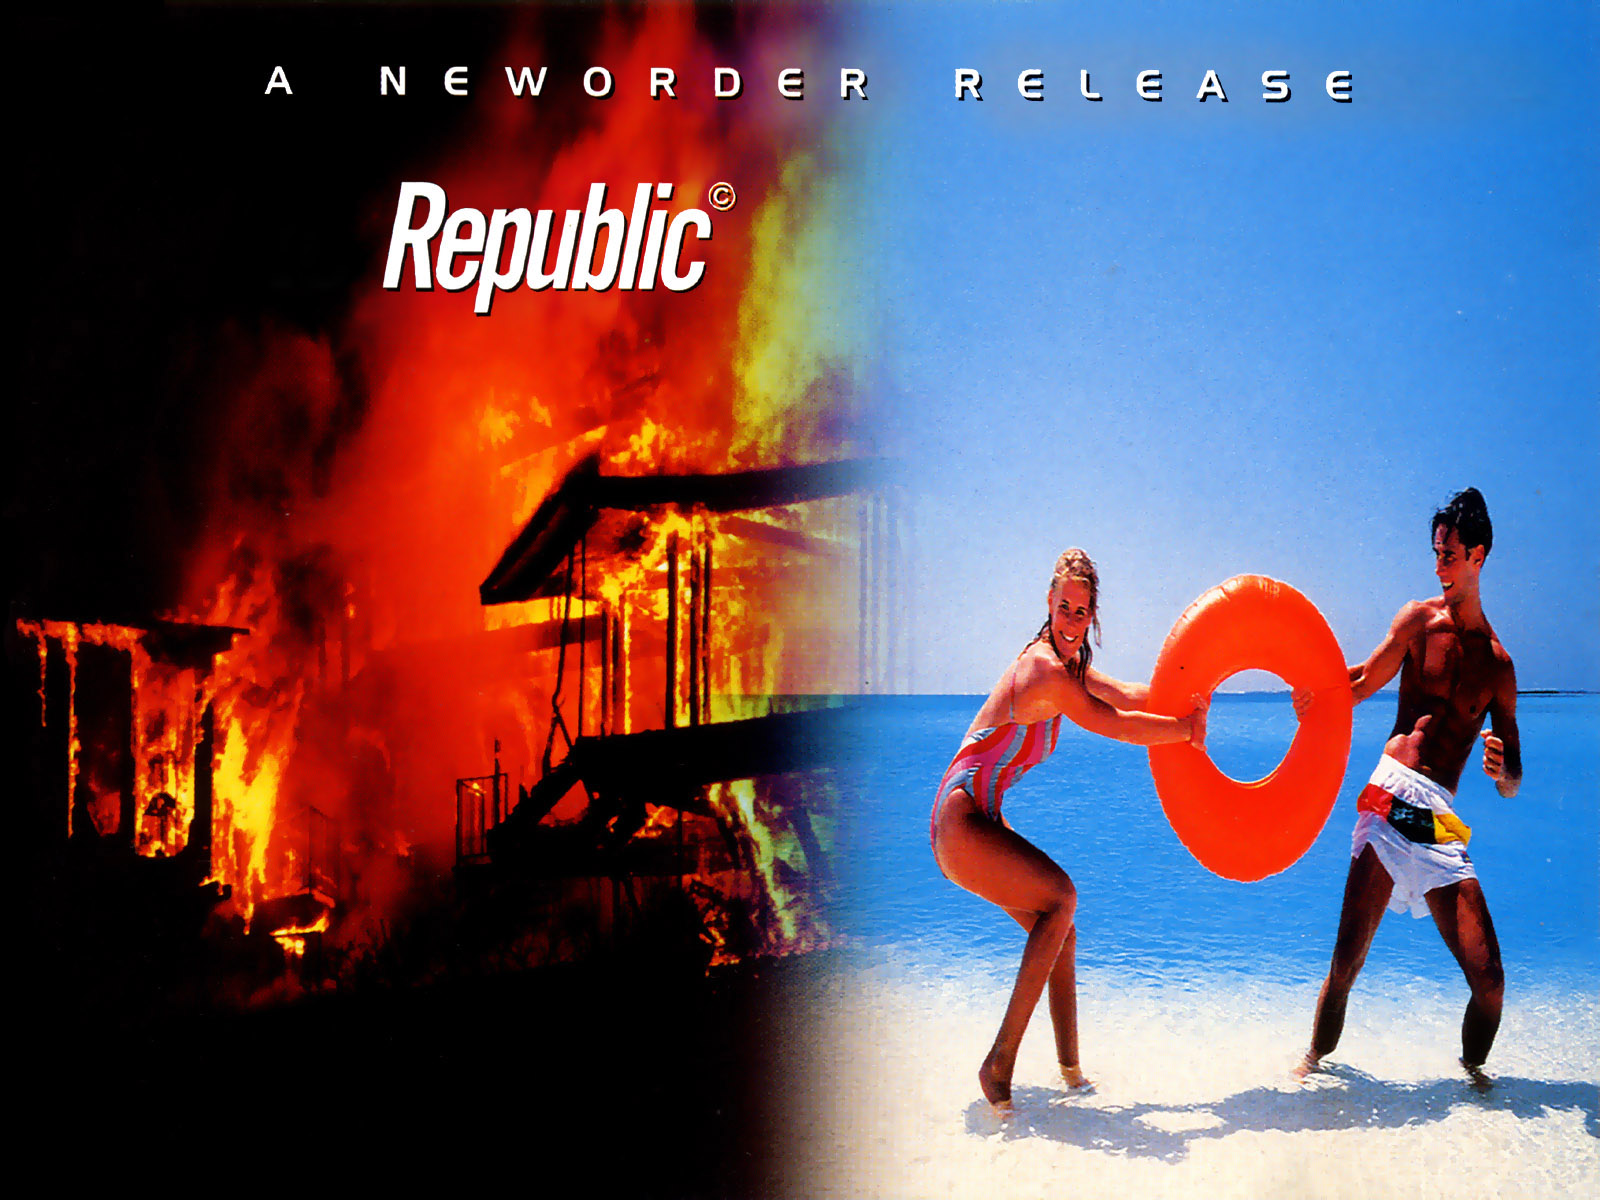 New Order Republic desktop background wallpaper